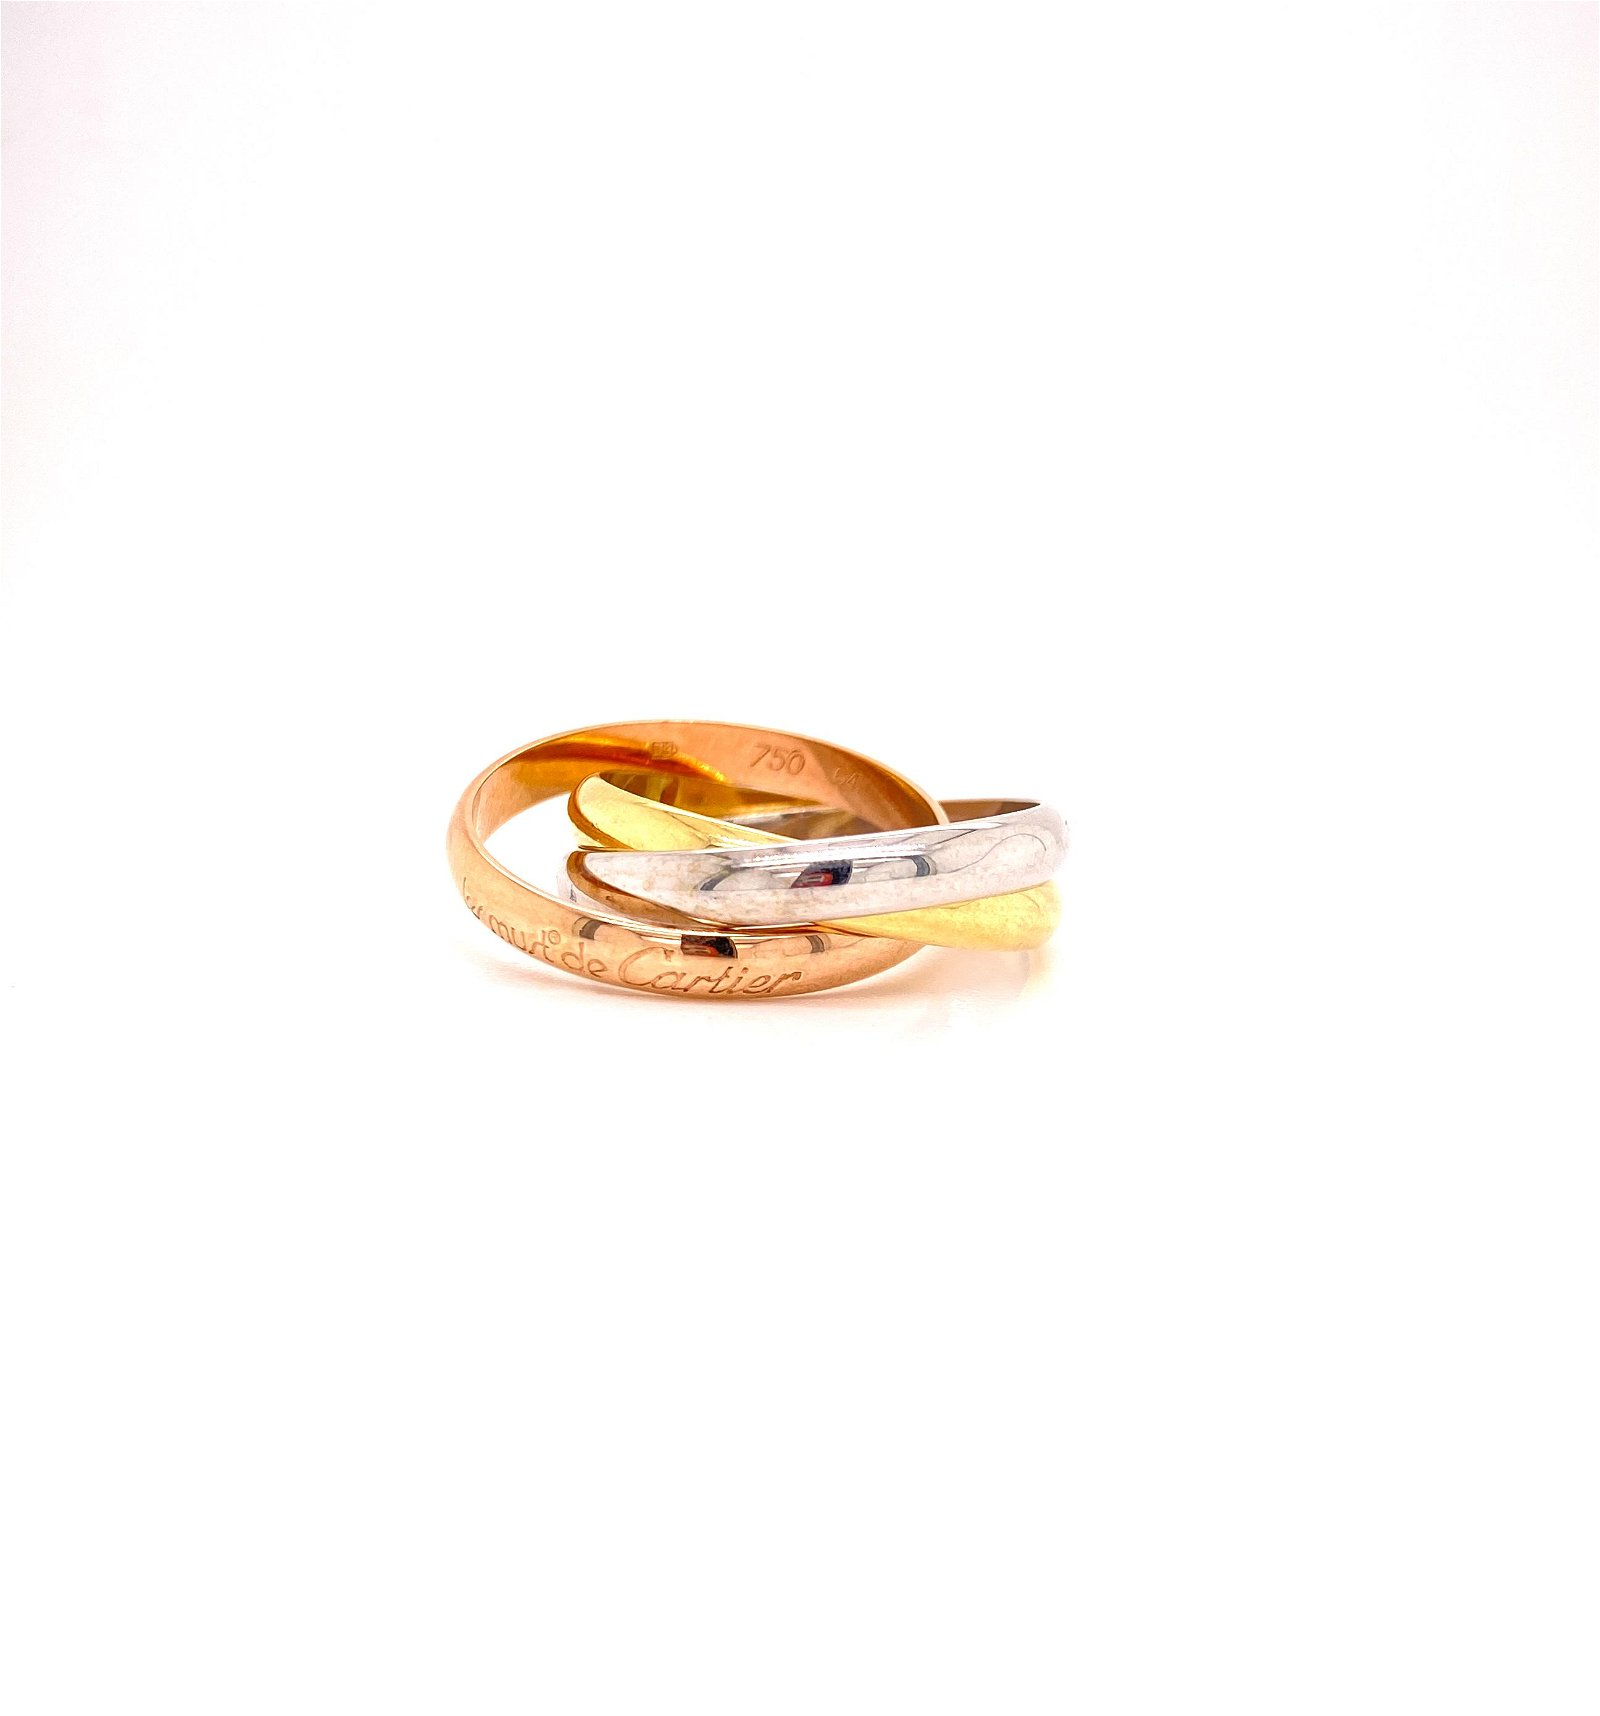 Cartier Trinity Ring, 18k White, yellow, & Rose Gold